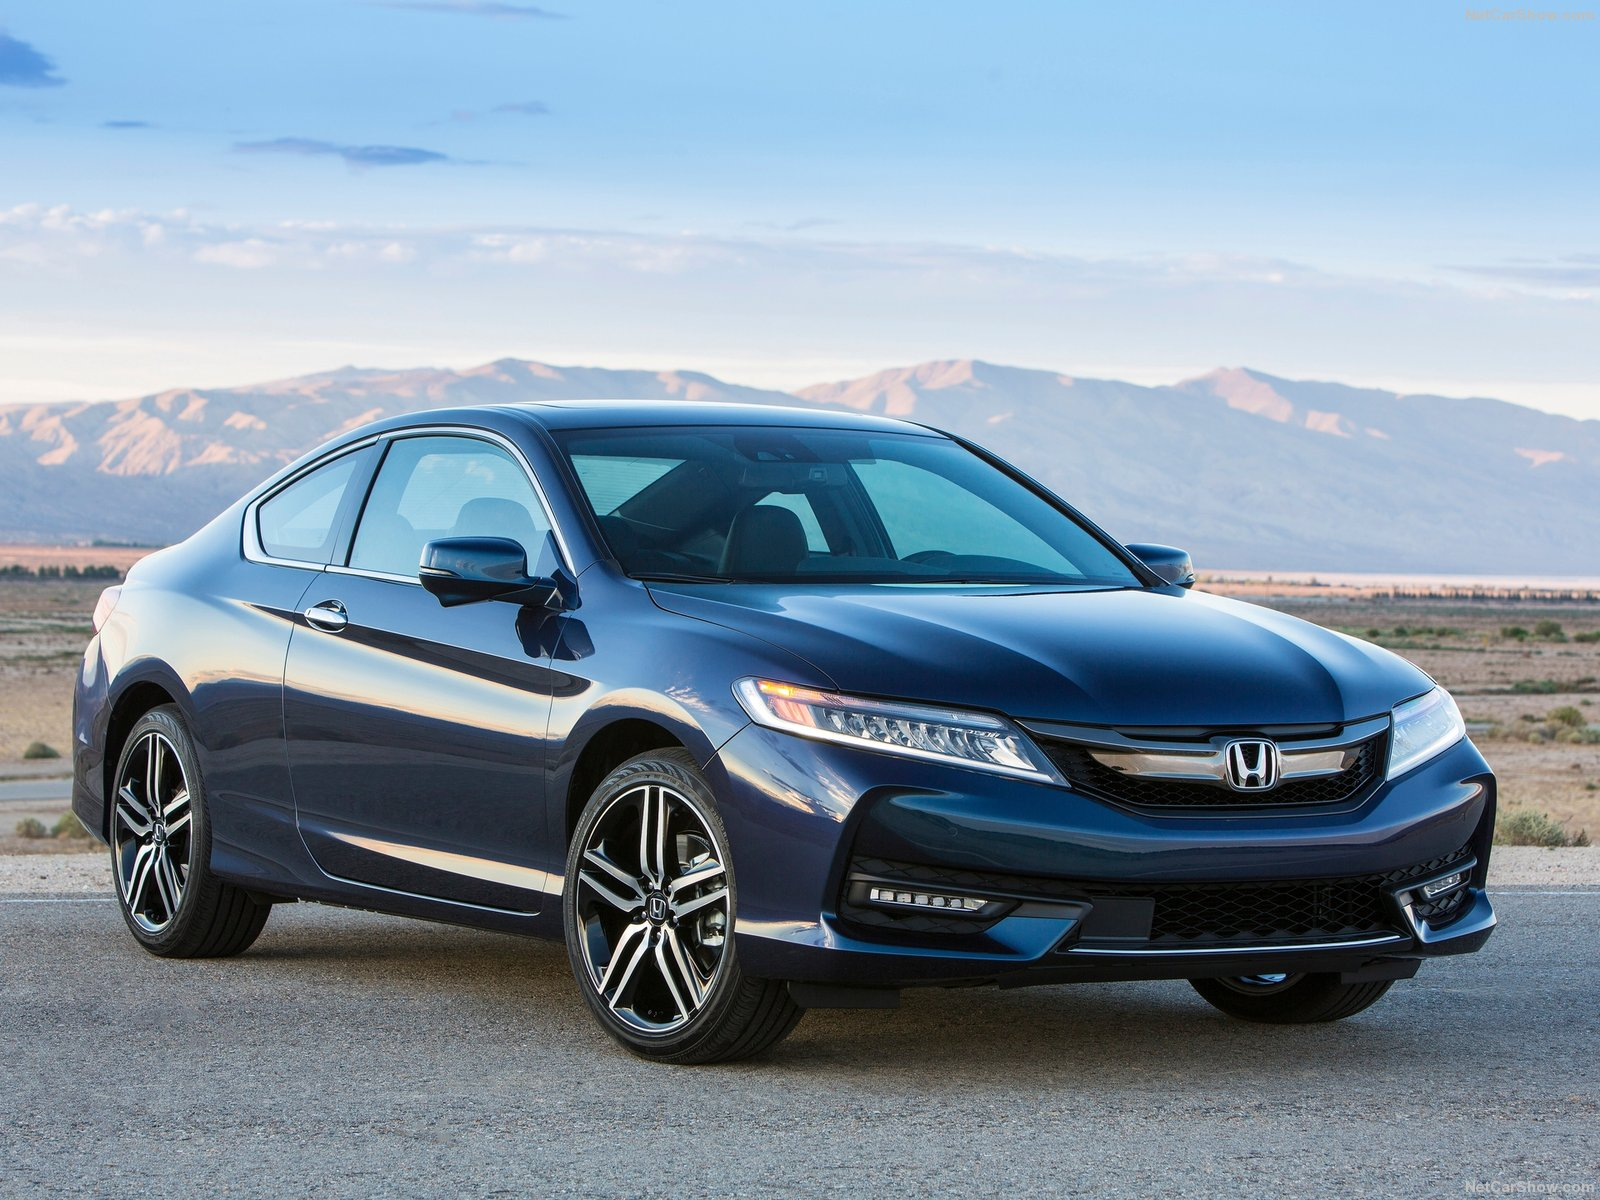 Honda Accord Coupe photo 159583